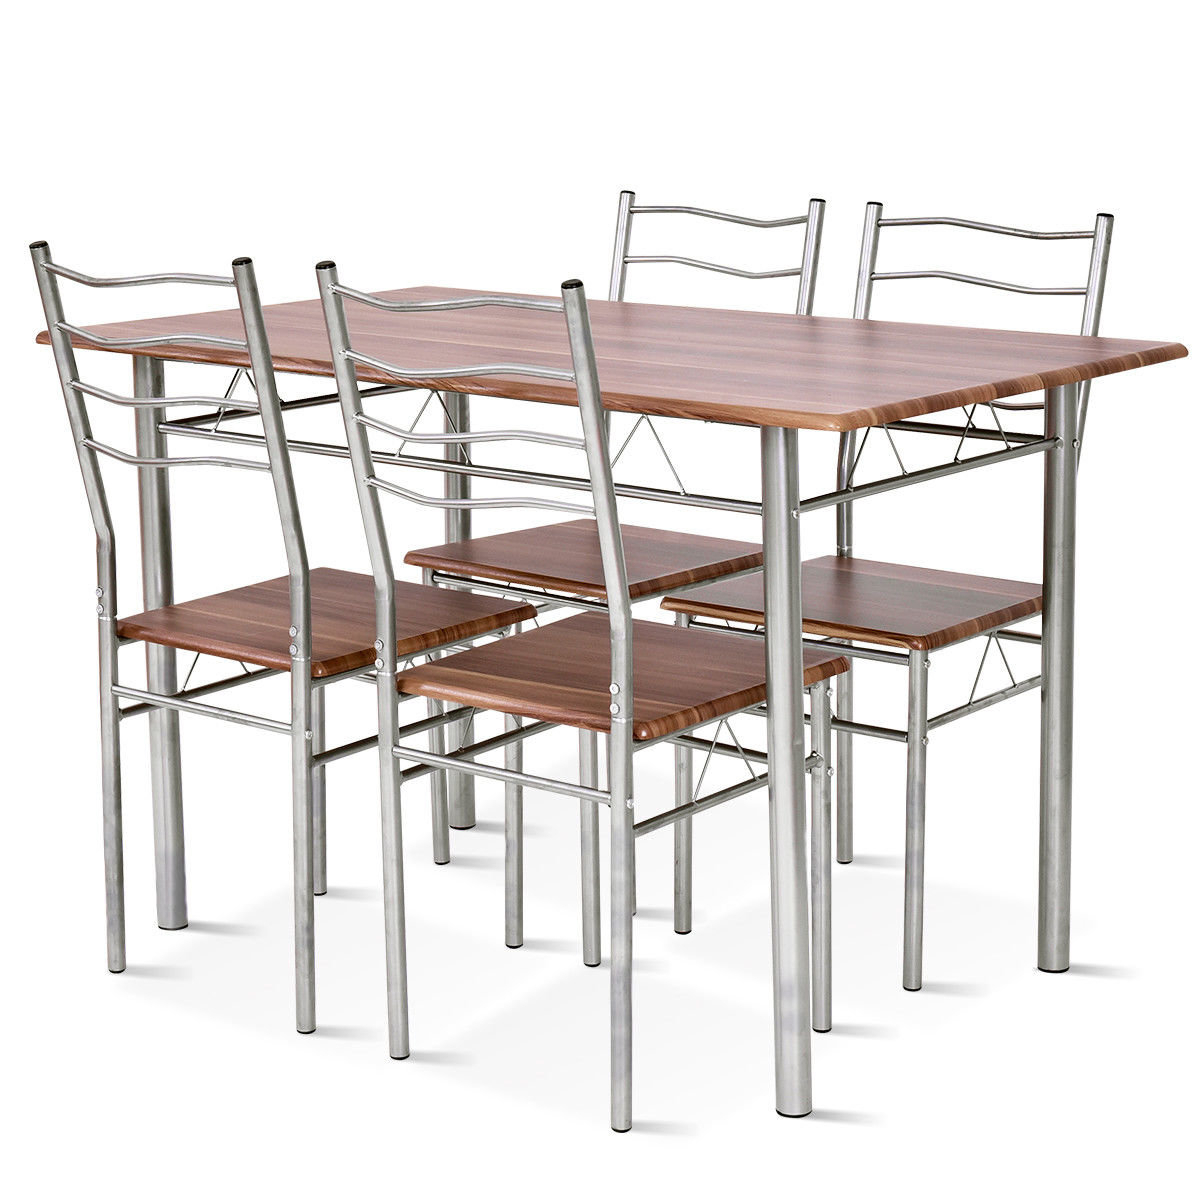 Popular Photo of Casiano 5 Piece Dining Sets